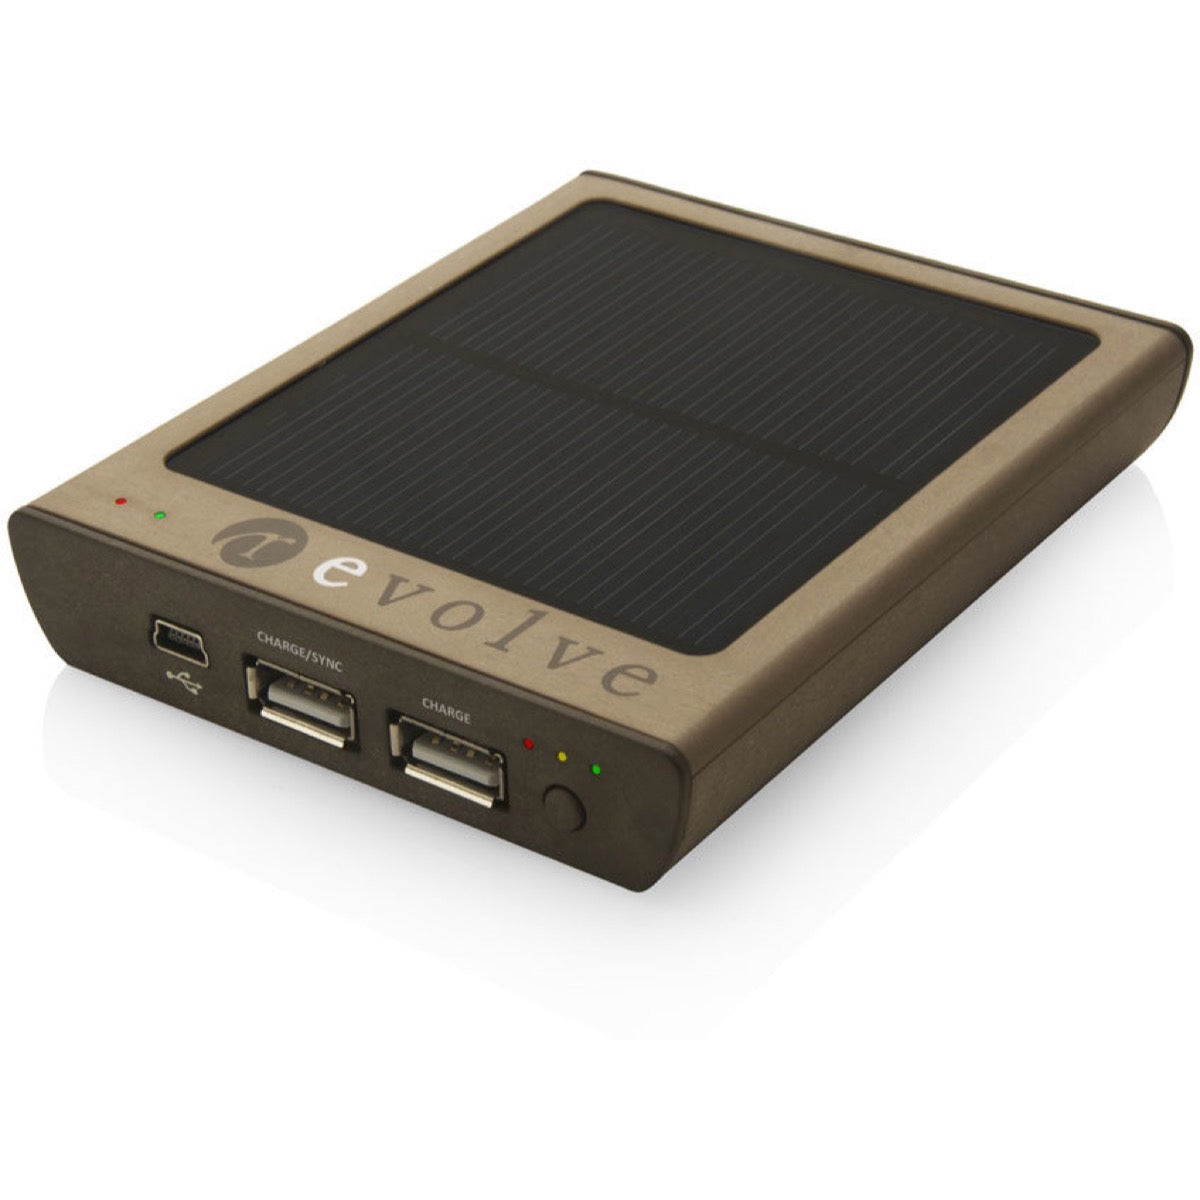 Revolve xeMini Universal Charger and Battery Backup